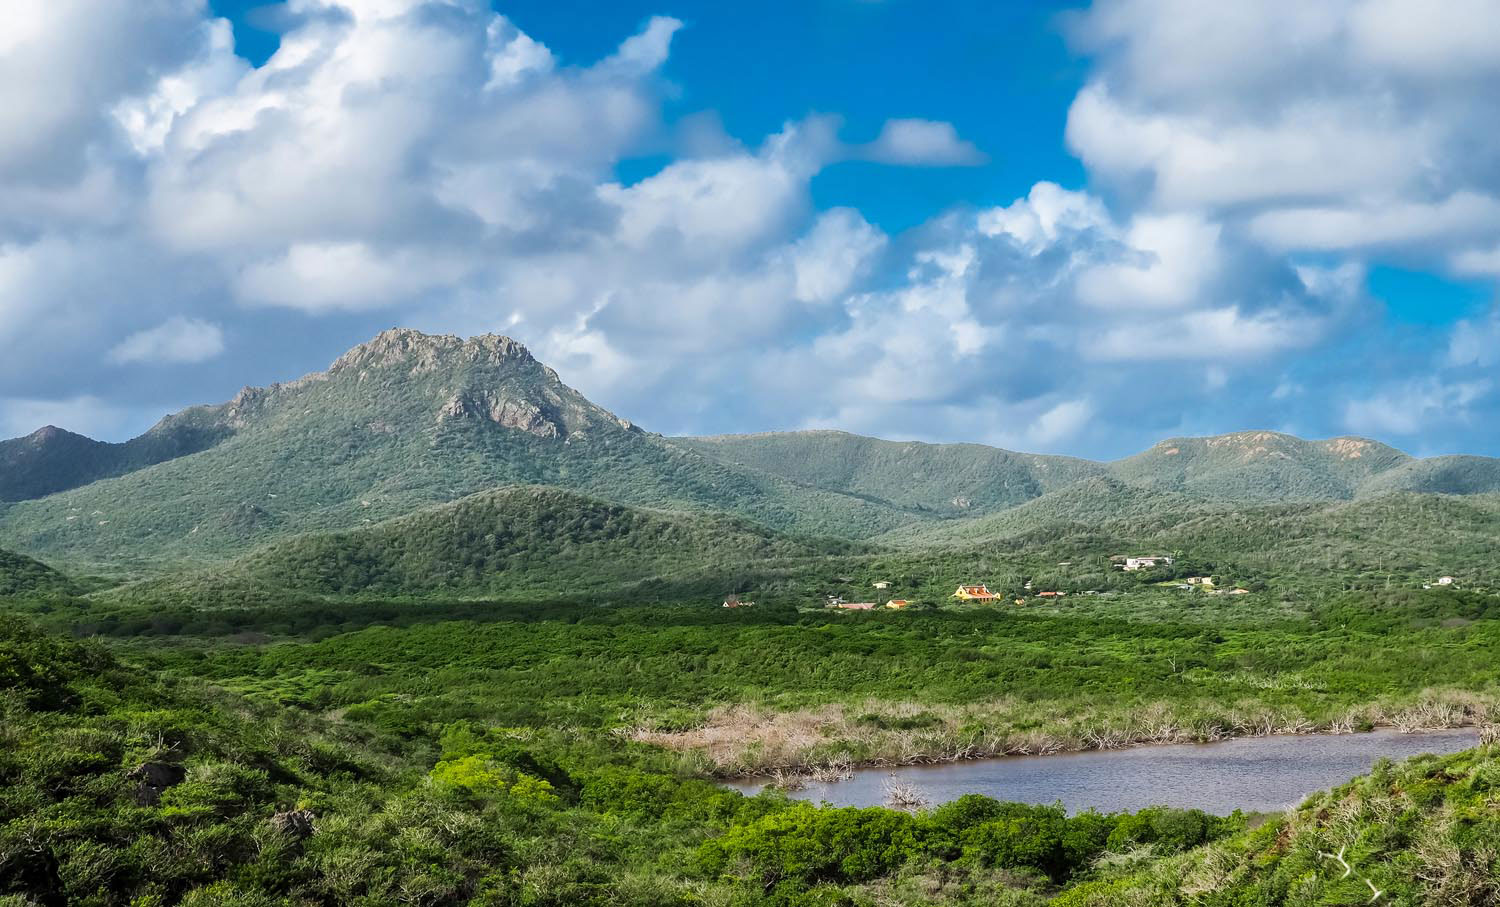 The summit of Christoffelberg looms above Curaçao's largest national park. Gail Johnson/Shutterstock.com